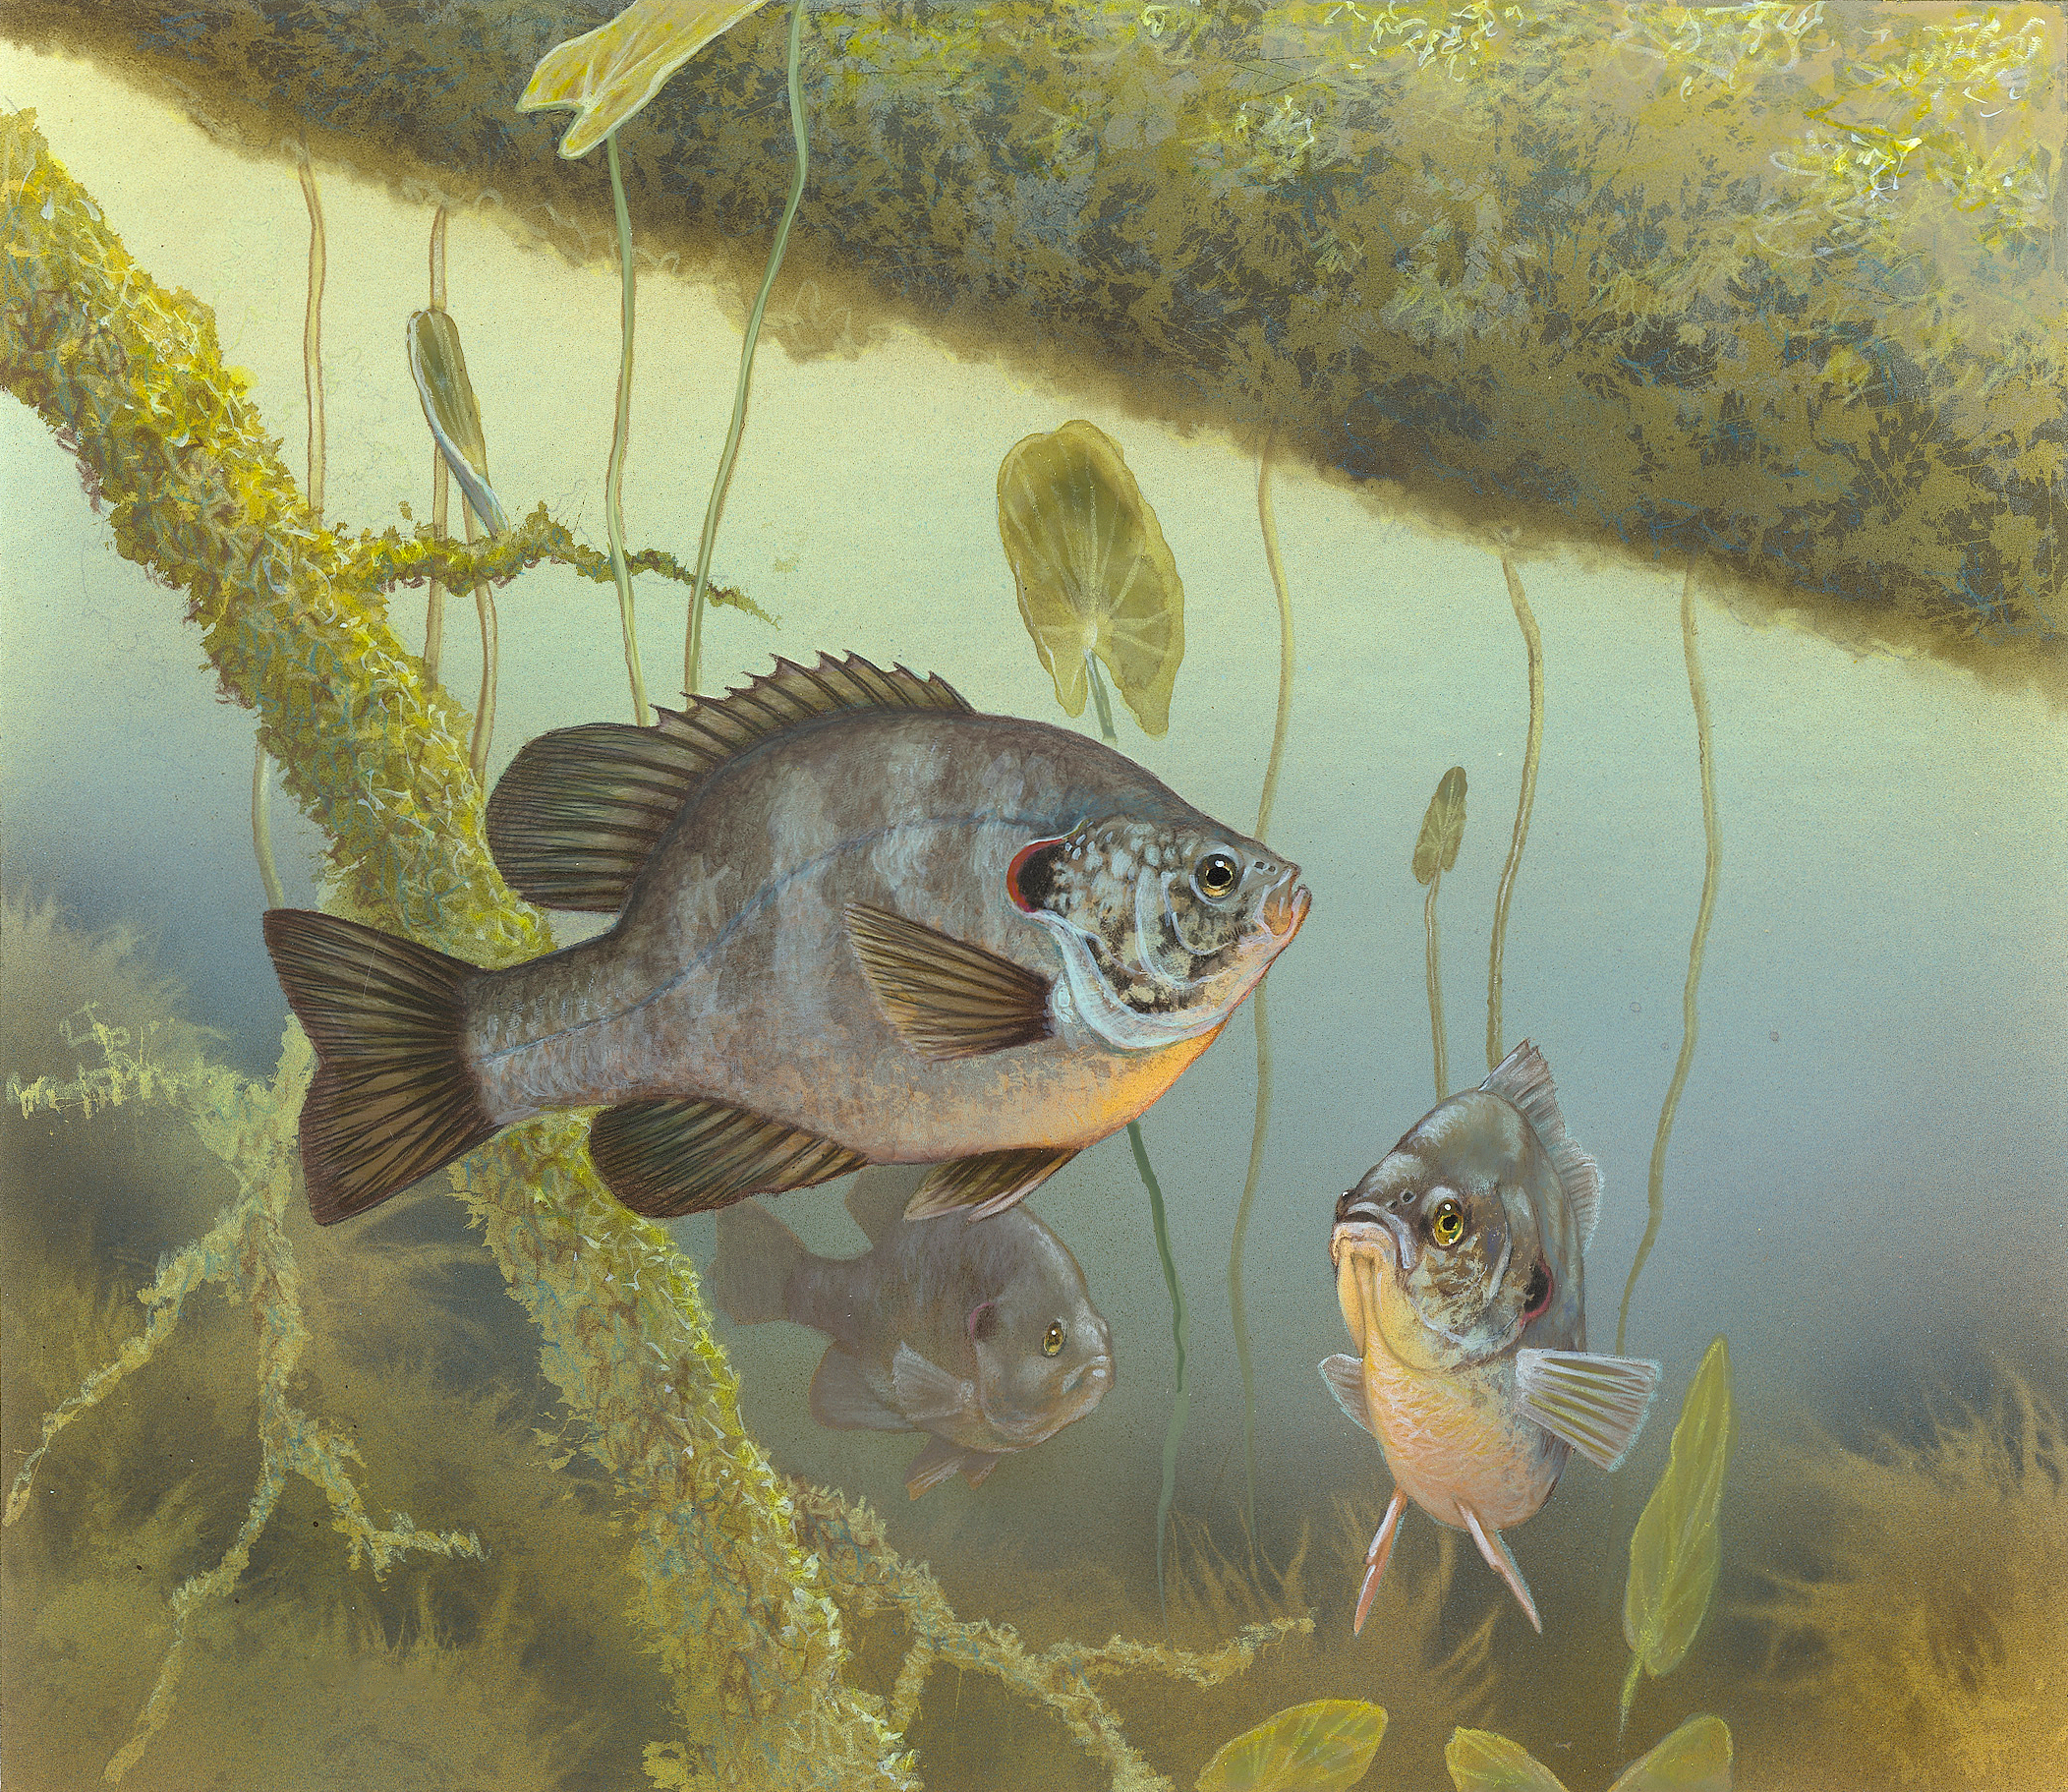 Redear sunfish prey on zebra mussels in the laboratory